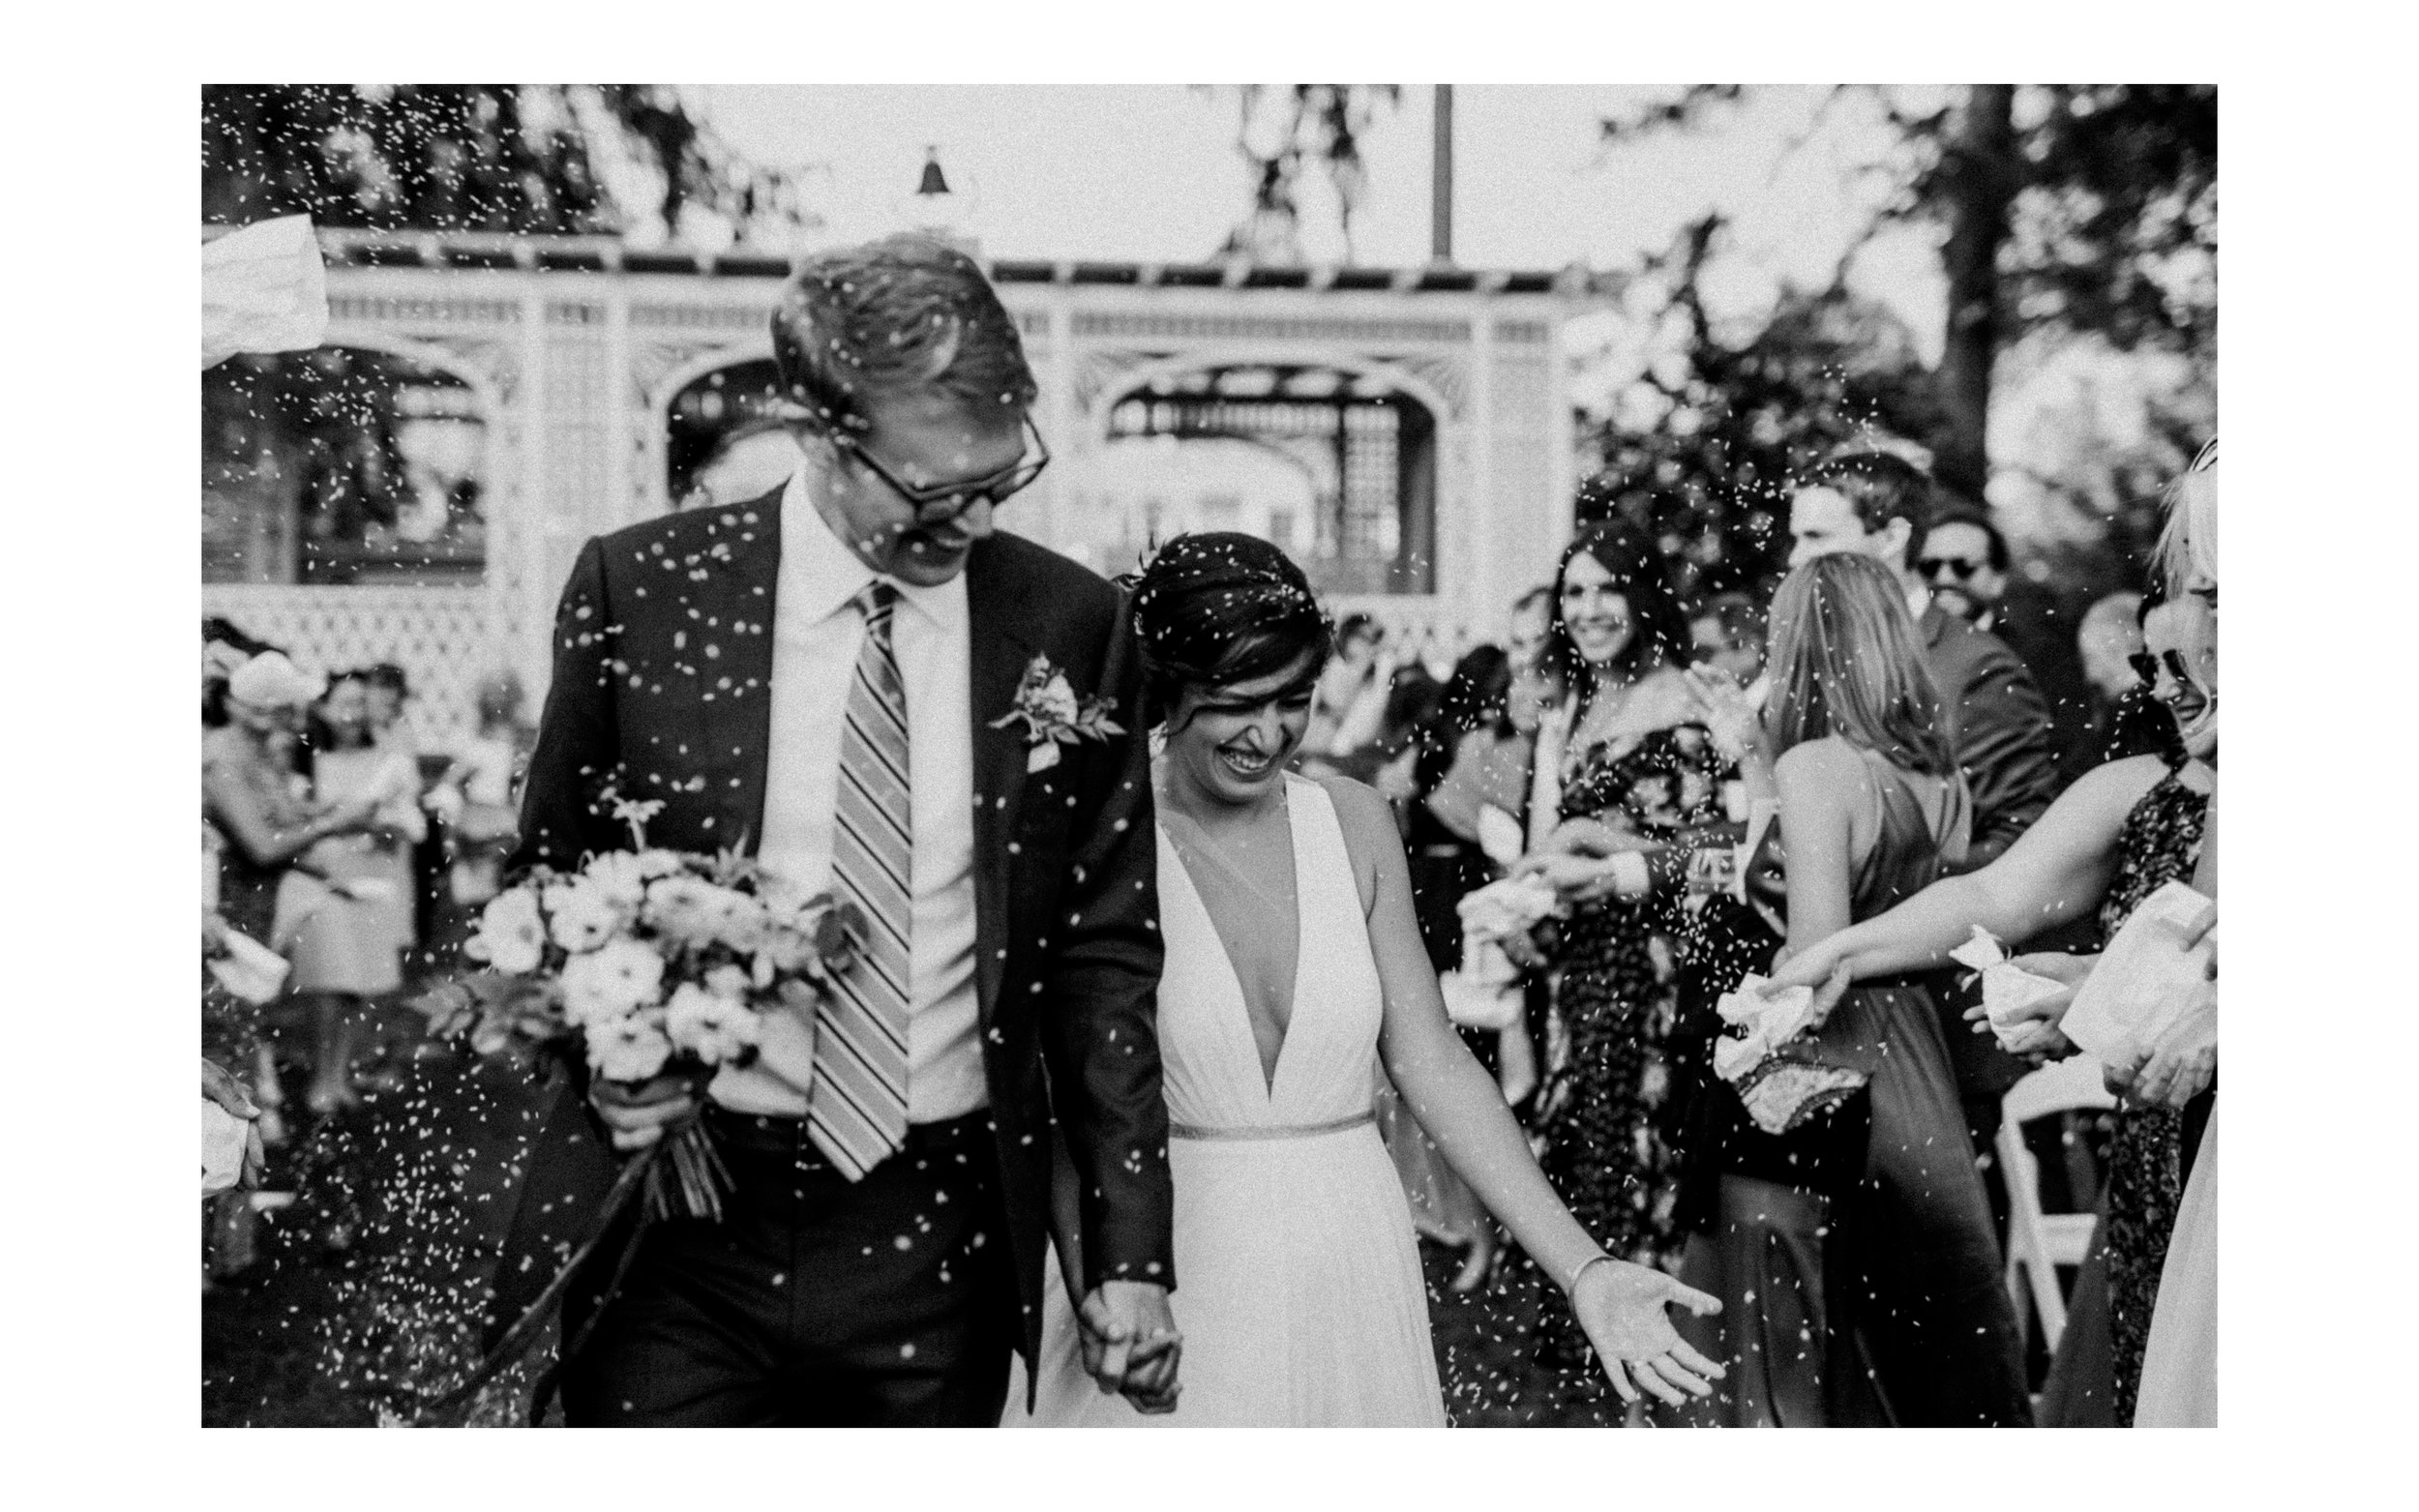 Berkshires Wedding Fine Art Wedding Photographer_Meg Haley Photographs_021.jpg